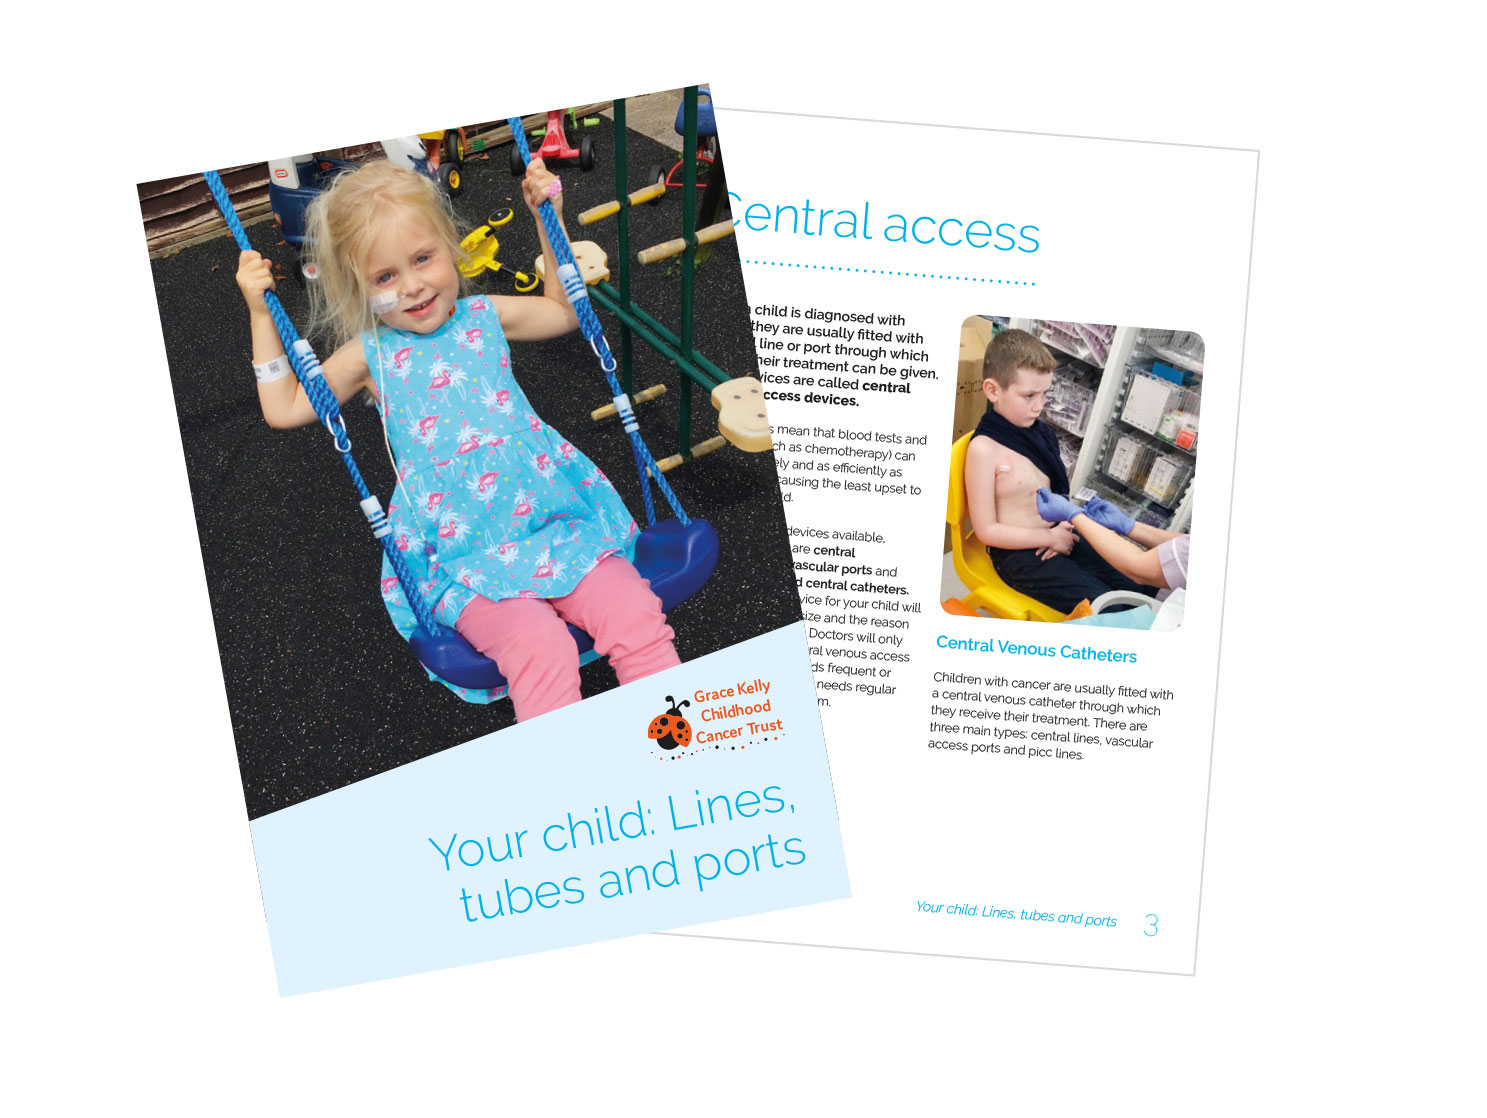 Lines, Tubes and Ports for Children with Cancer